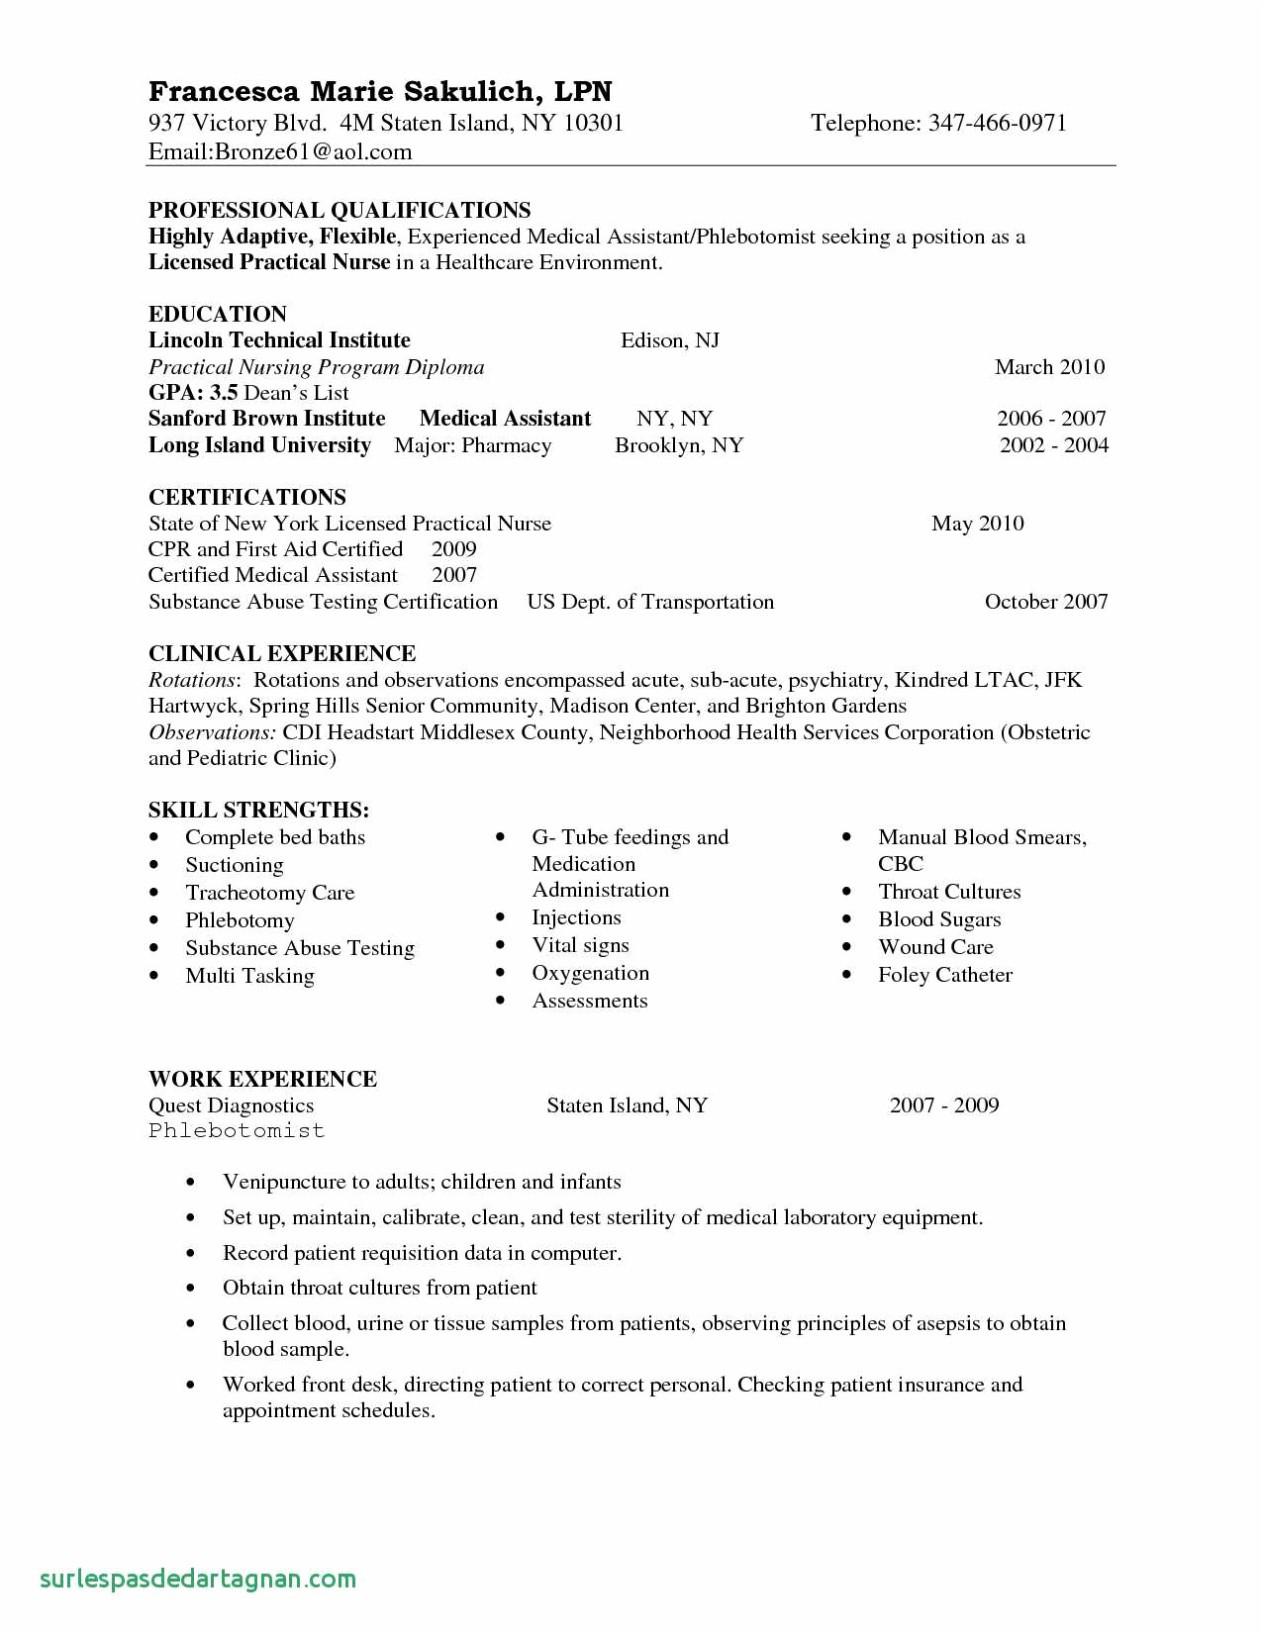 New Grad Nurse Resume New Grad Nurse Resume new grad nurse resume|wikiresume.com